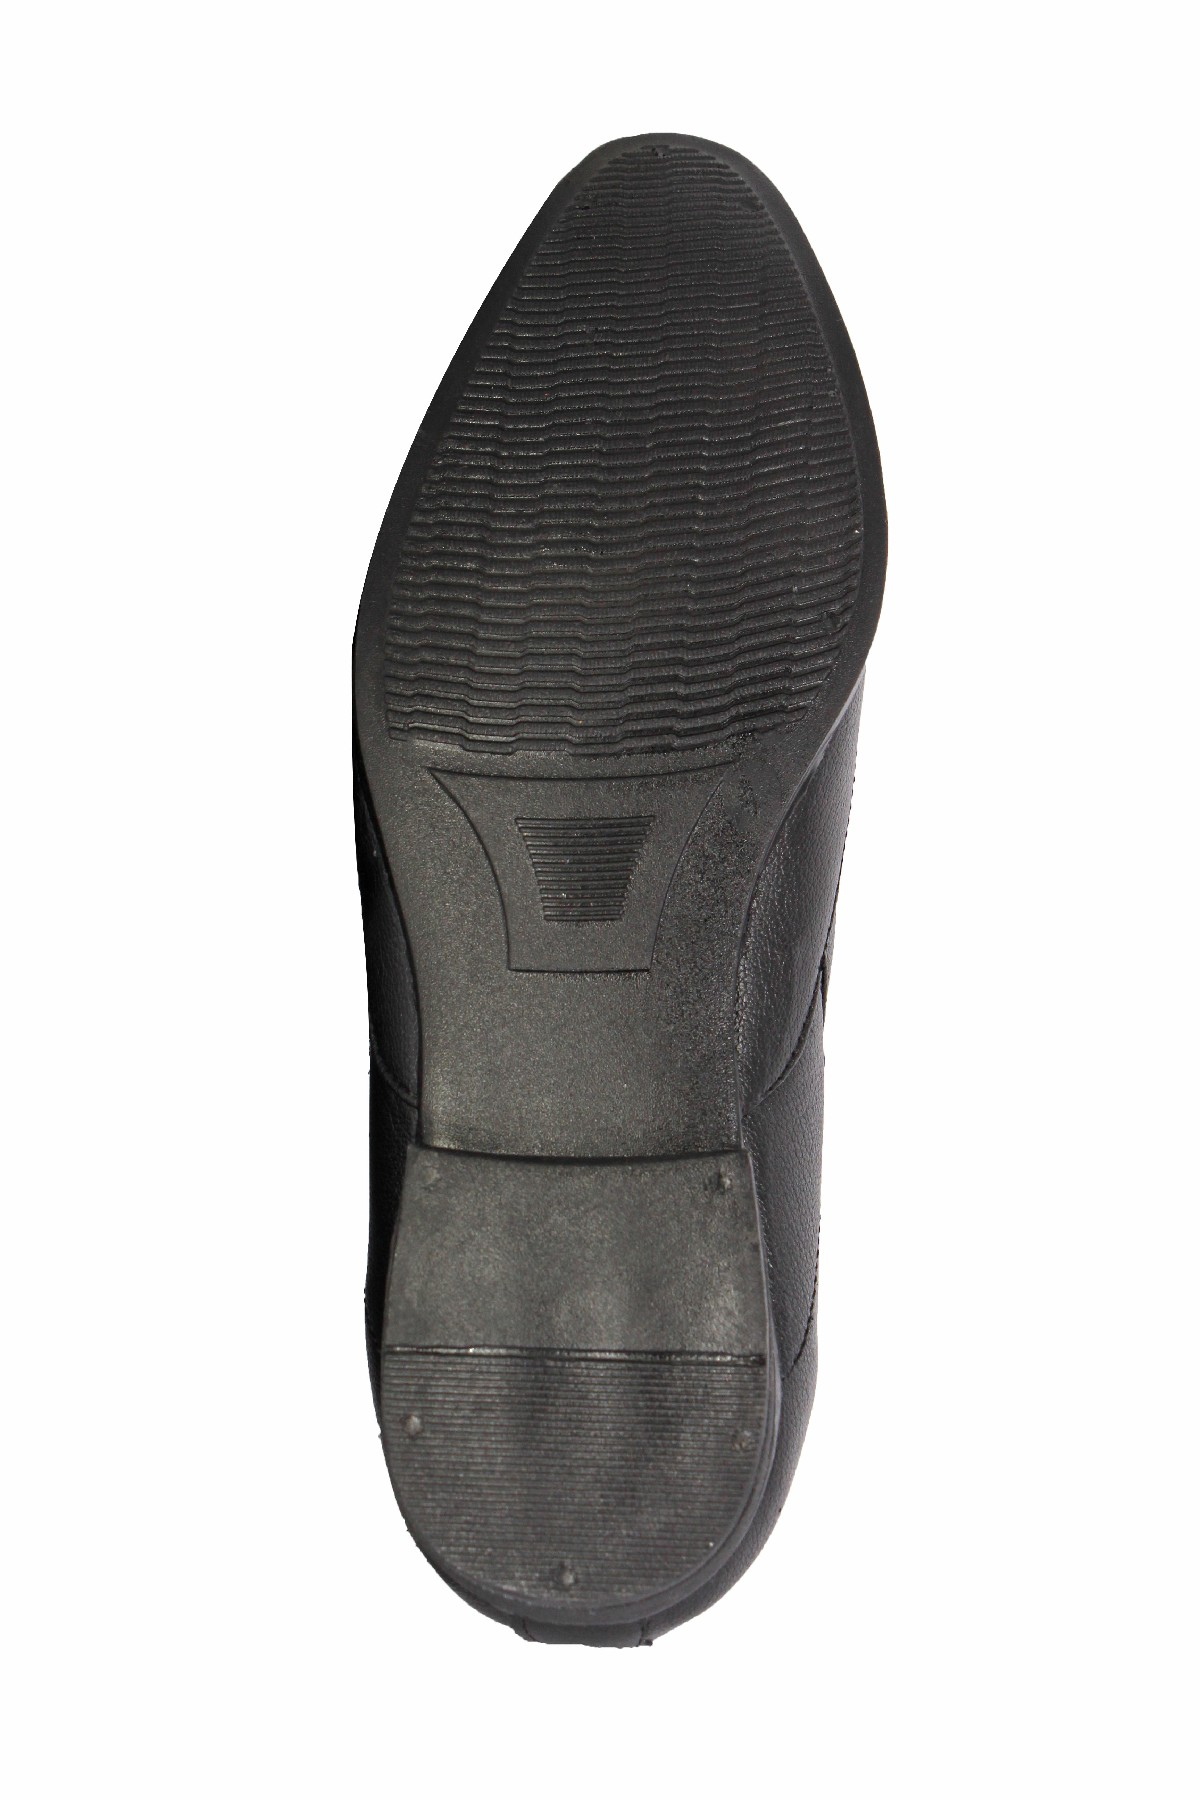 JKPORT Present A Stylish, Fashionable & Trendy Formal Shoes For Boys & Men JKPF120BLK (BLACK, 6-10, 8 PAIR)